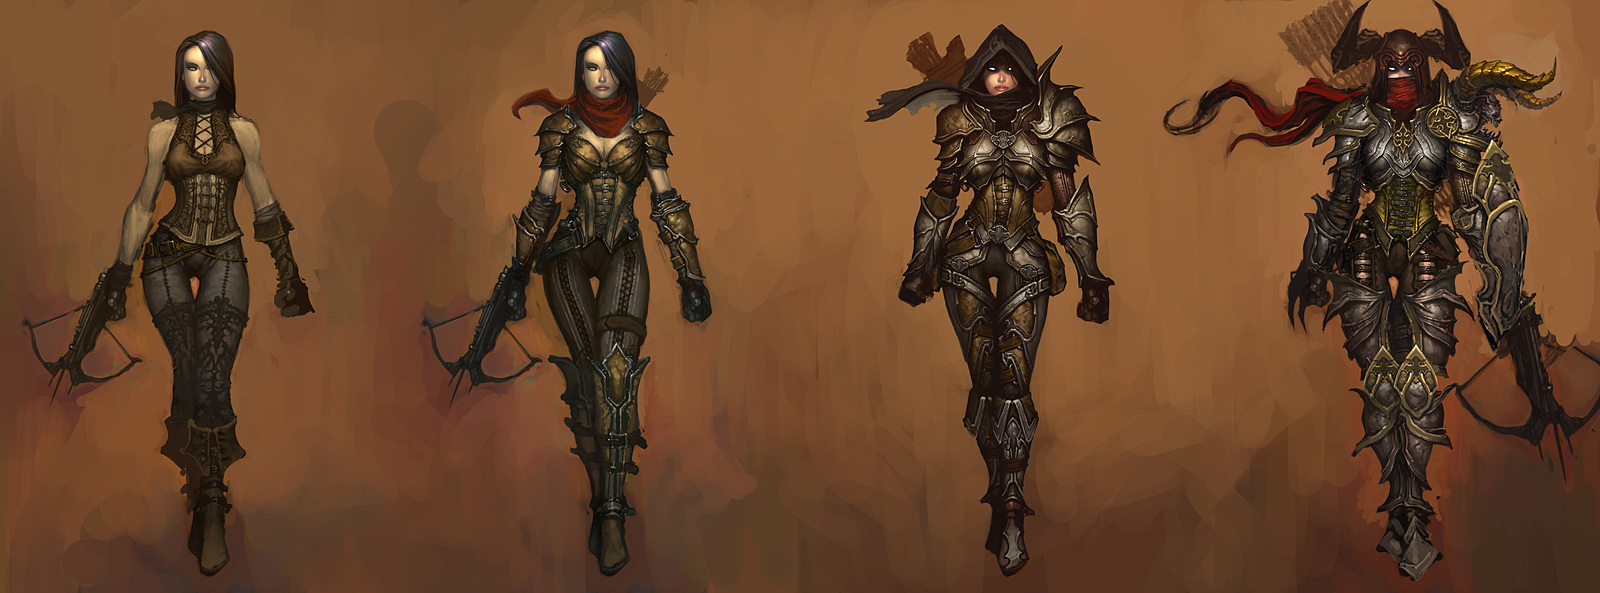 barbarian diablo 3 armor - photo #35